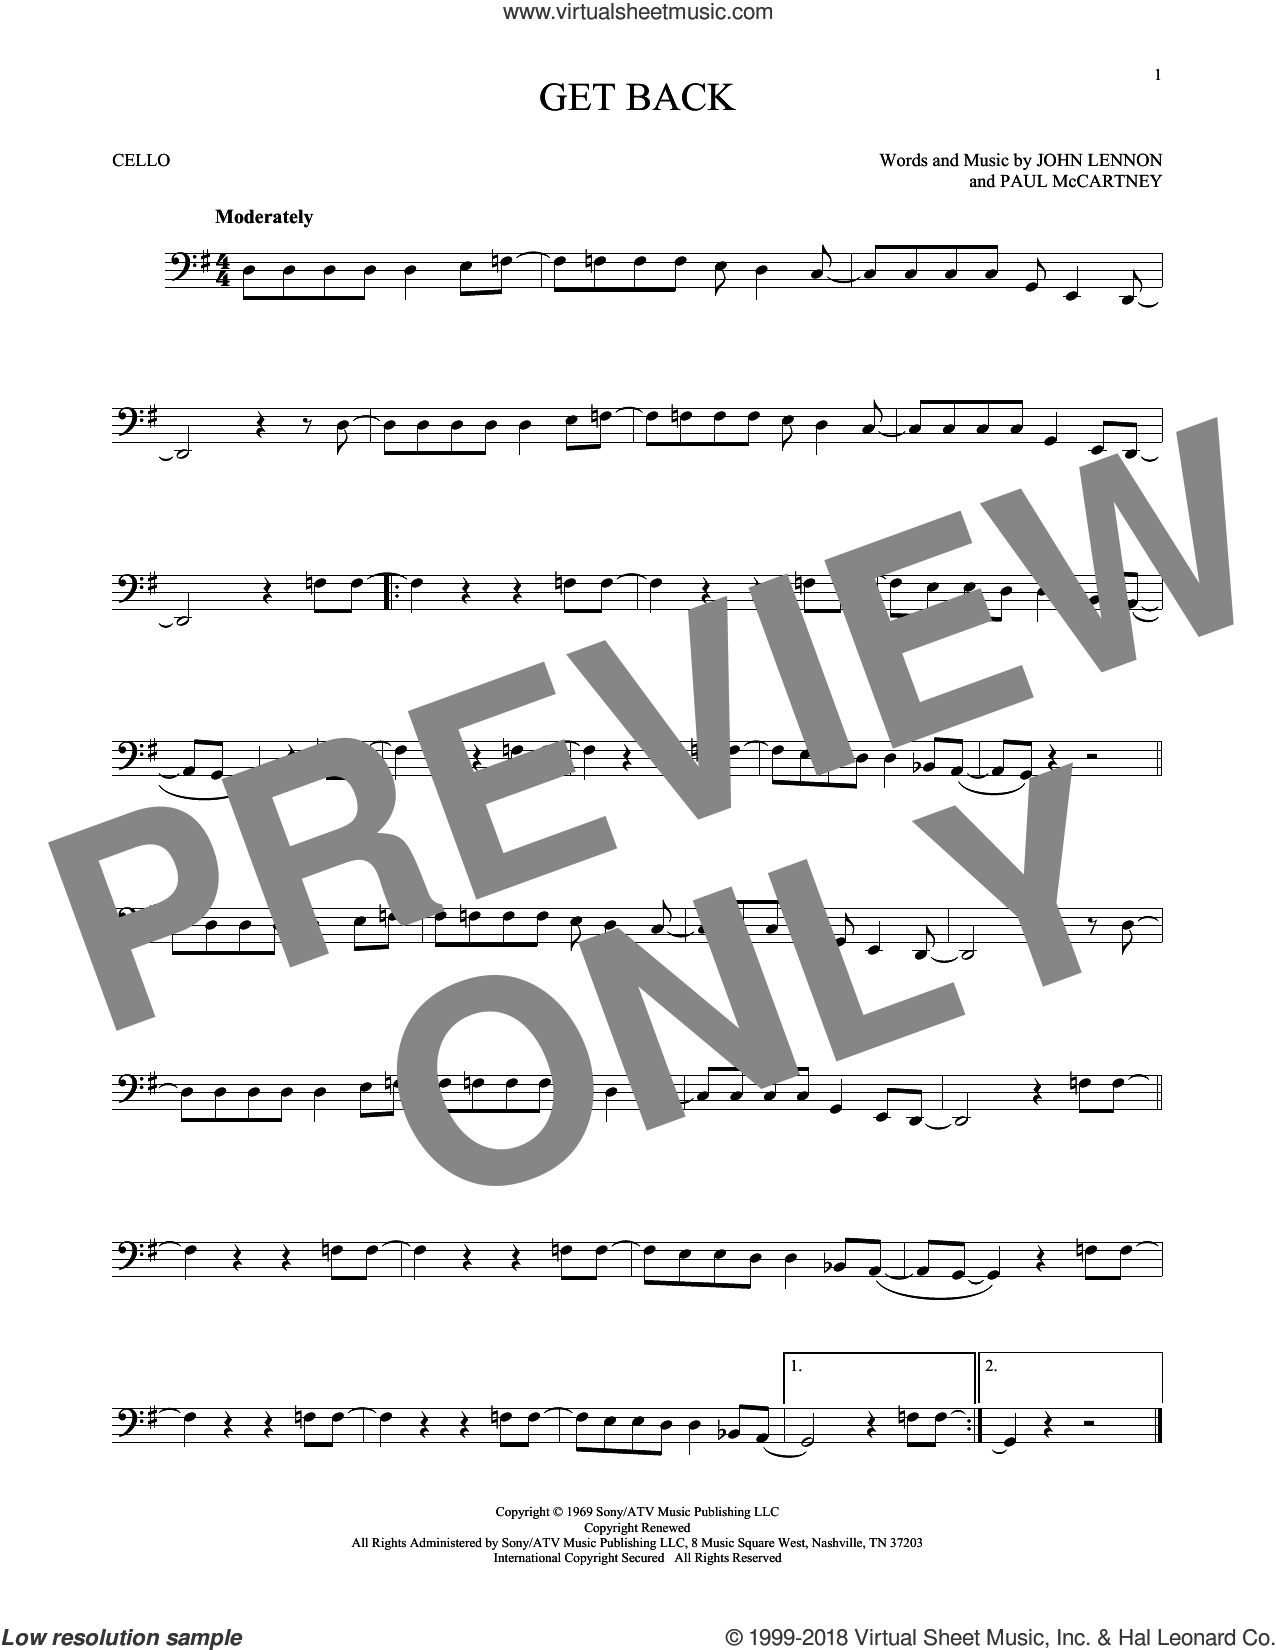 Get Back sheet music for cello solo by Paul McCartney, The Beatles and John Lennon. Score Image Preview.